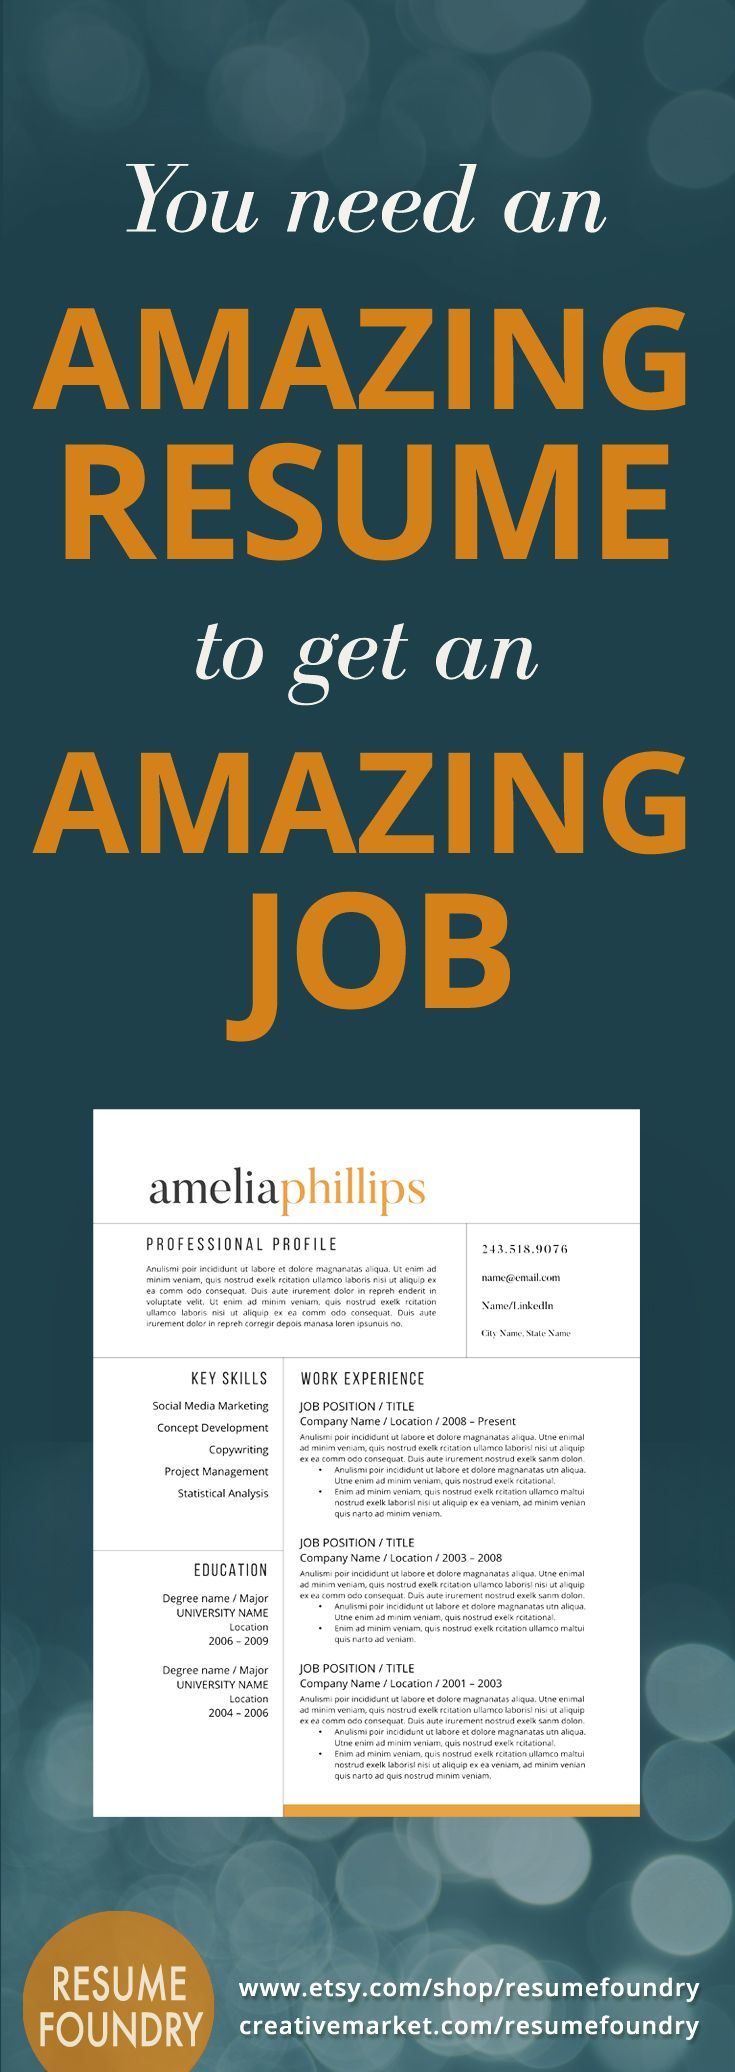 Having an amazing resume can only help your job search. Easy to use in Microsoft Word - download this resume today.